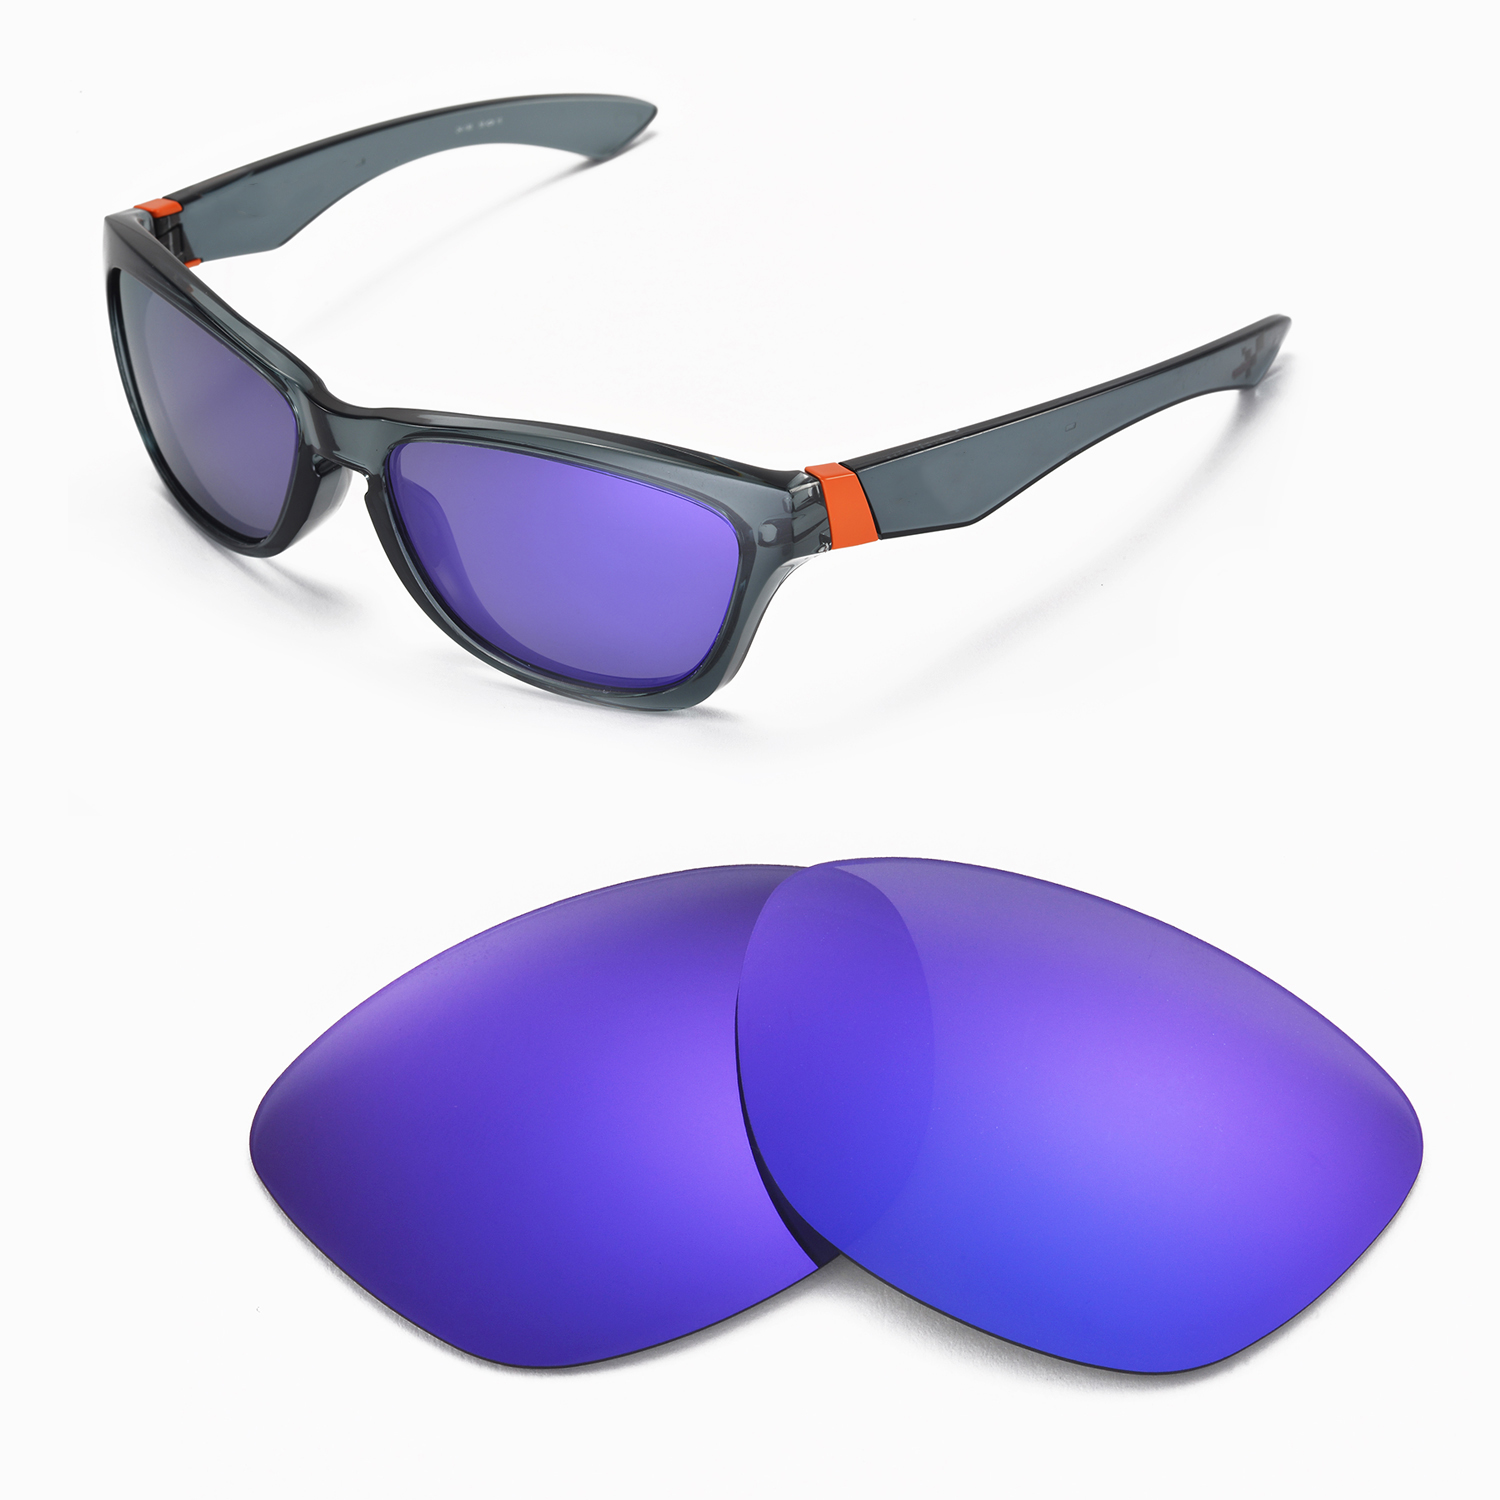 3ab02ee4edf Details about New Walleva Polarized Purple Replacement Lenses For Oakley  Jupiter Sunglasses